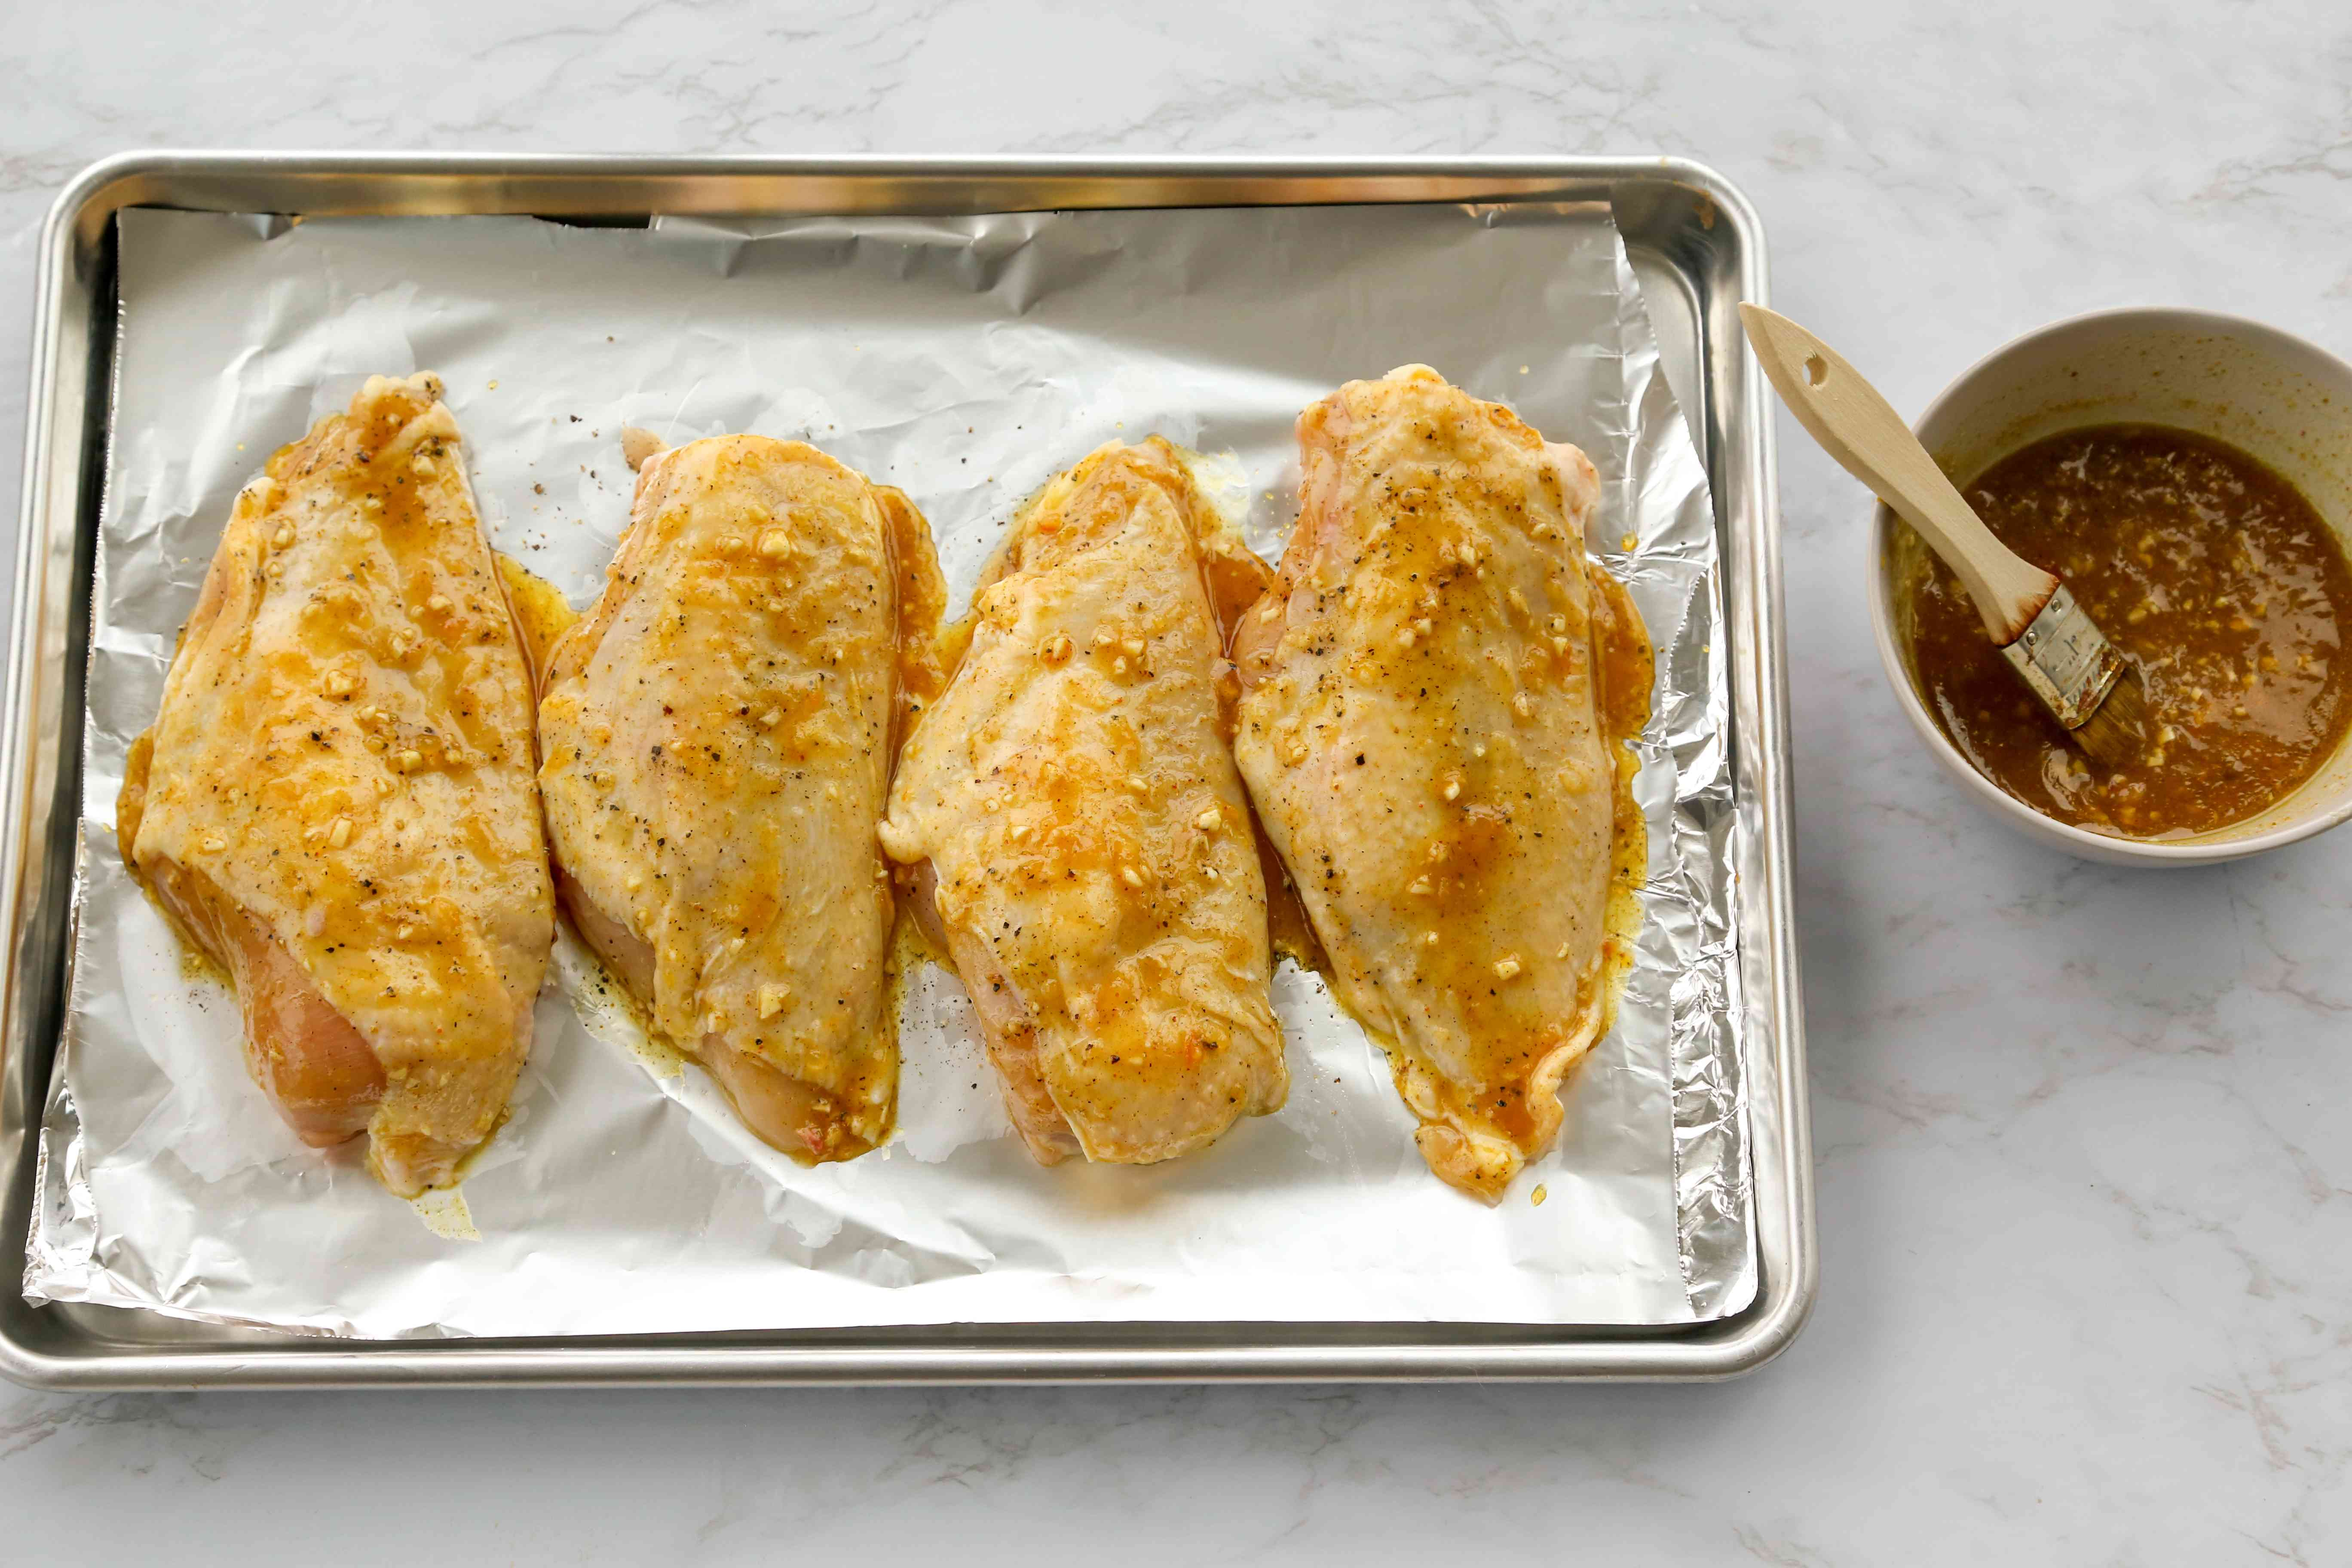 Coat the chicken pieces with the marmalade mixture